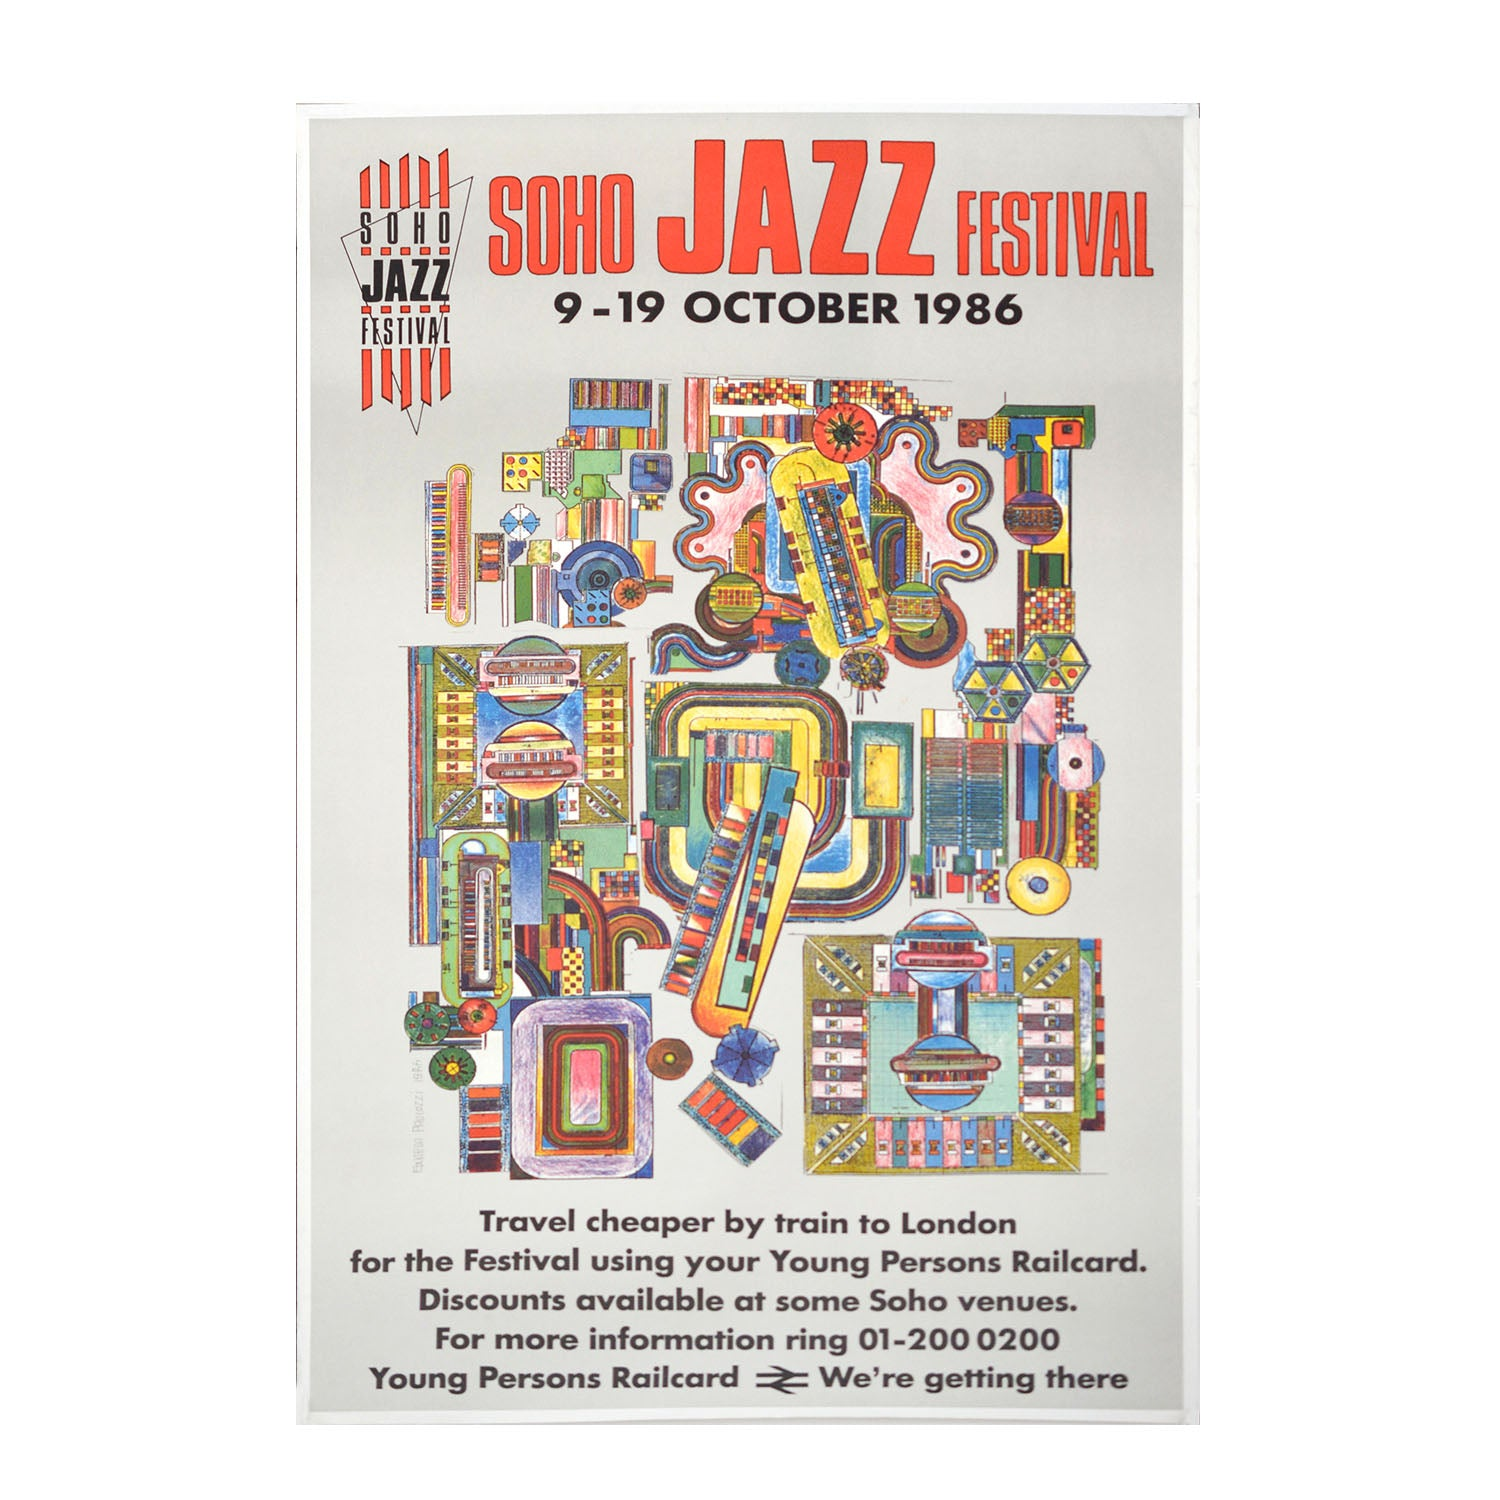 Soho Jazz Festival (BR version)